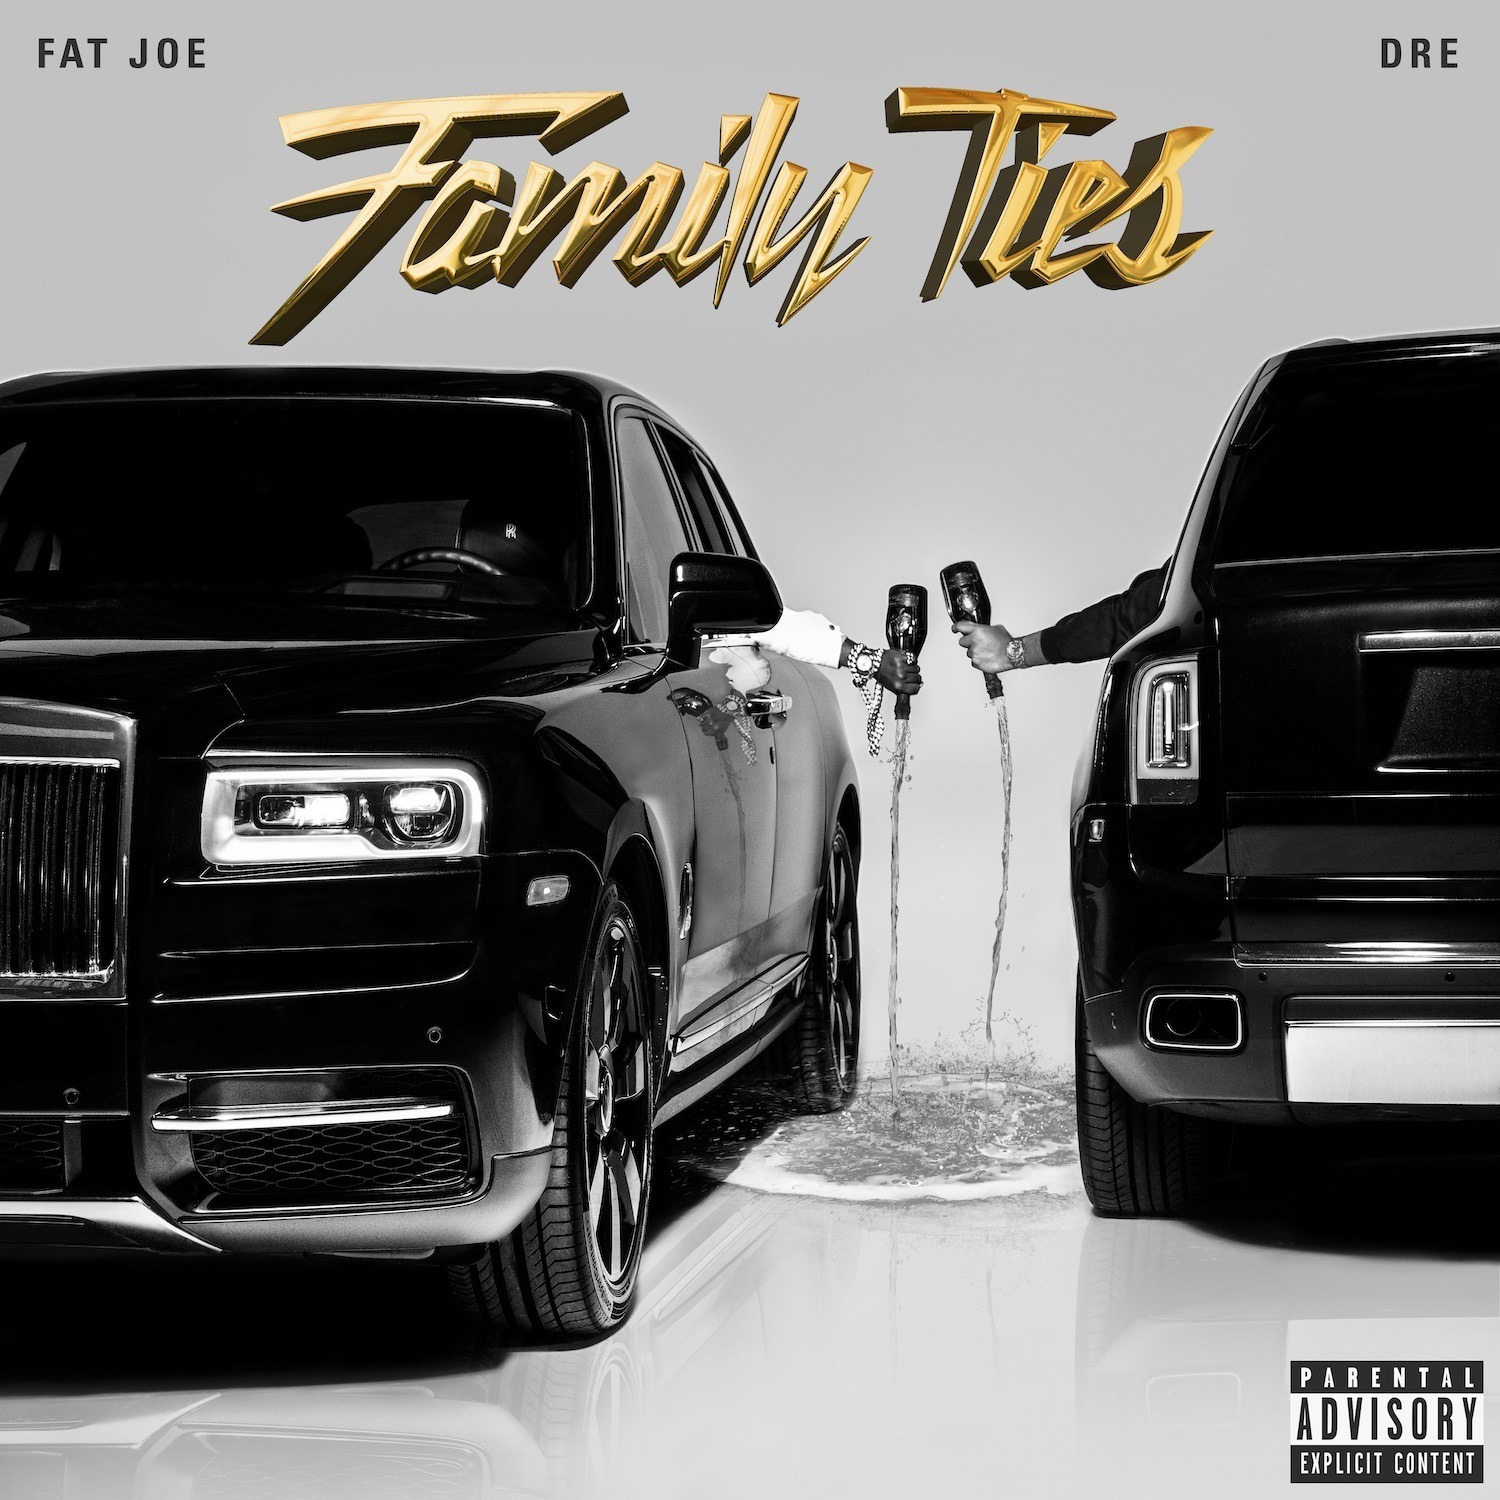 Fat Joe Hands On You Instrumental Prod By Boi 1da